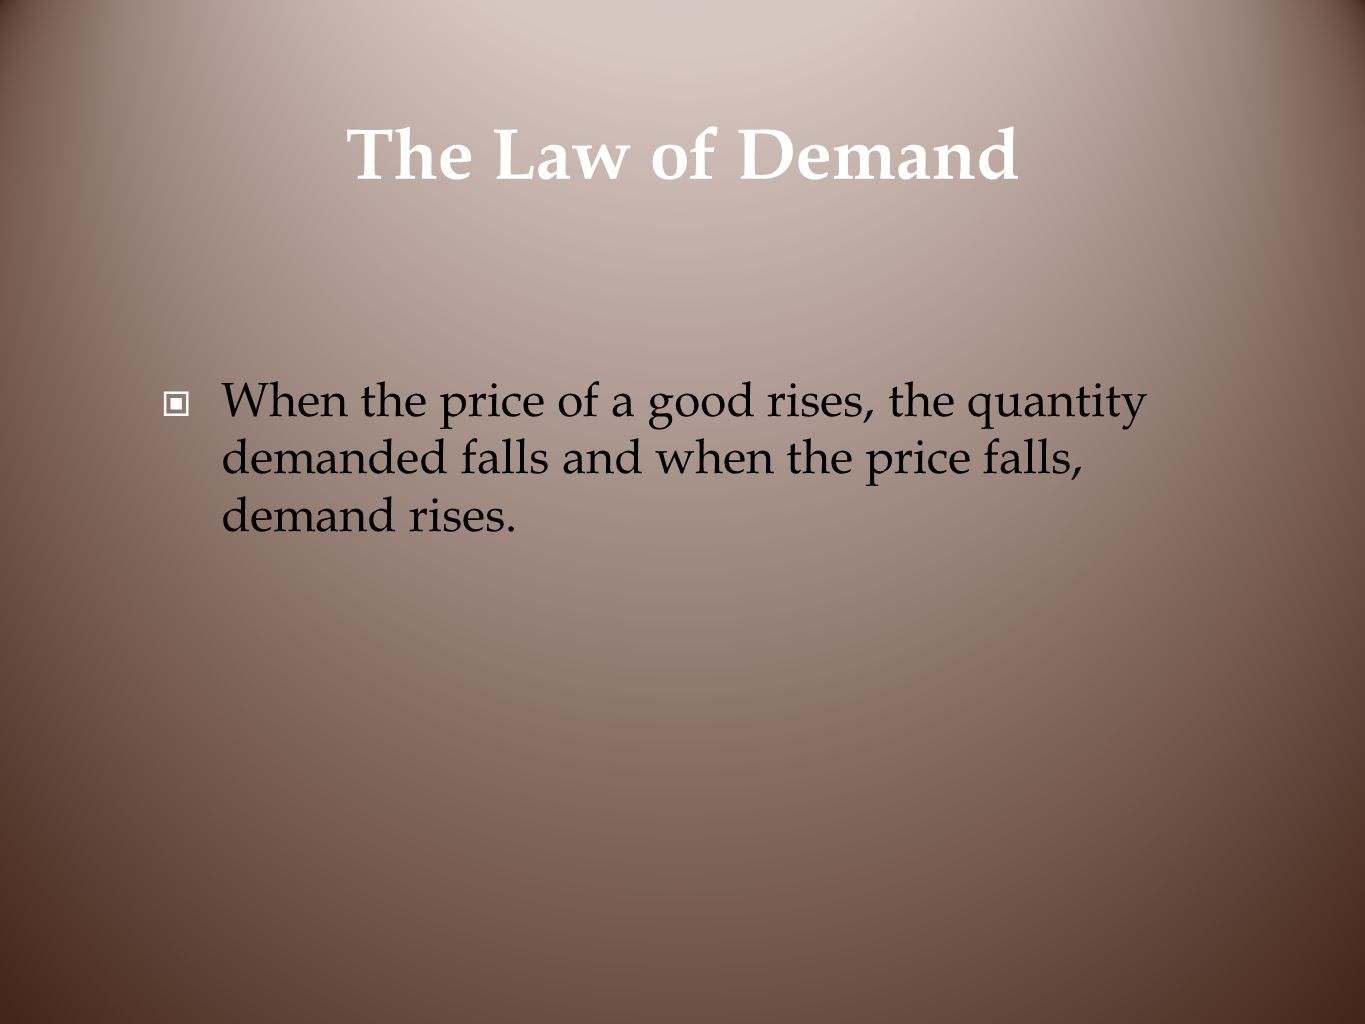 The Law of Demand When the price of a good rises, the quantity demanded falls and when the price falls, demand rises.